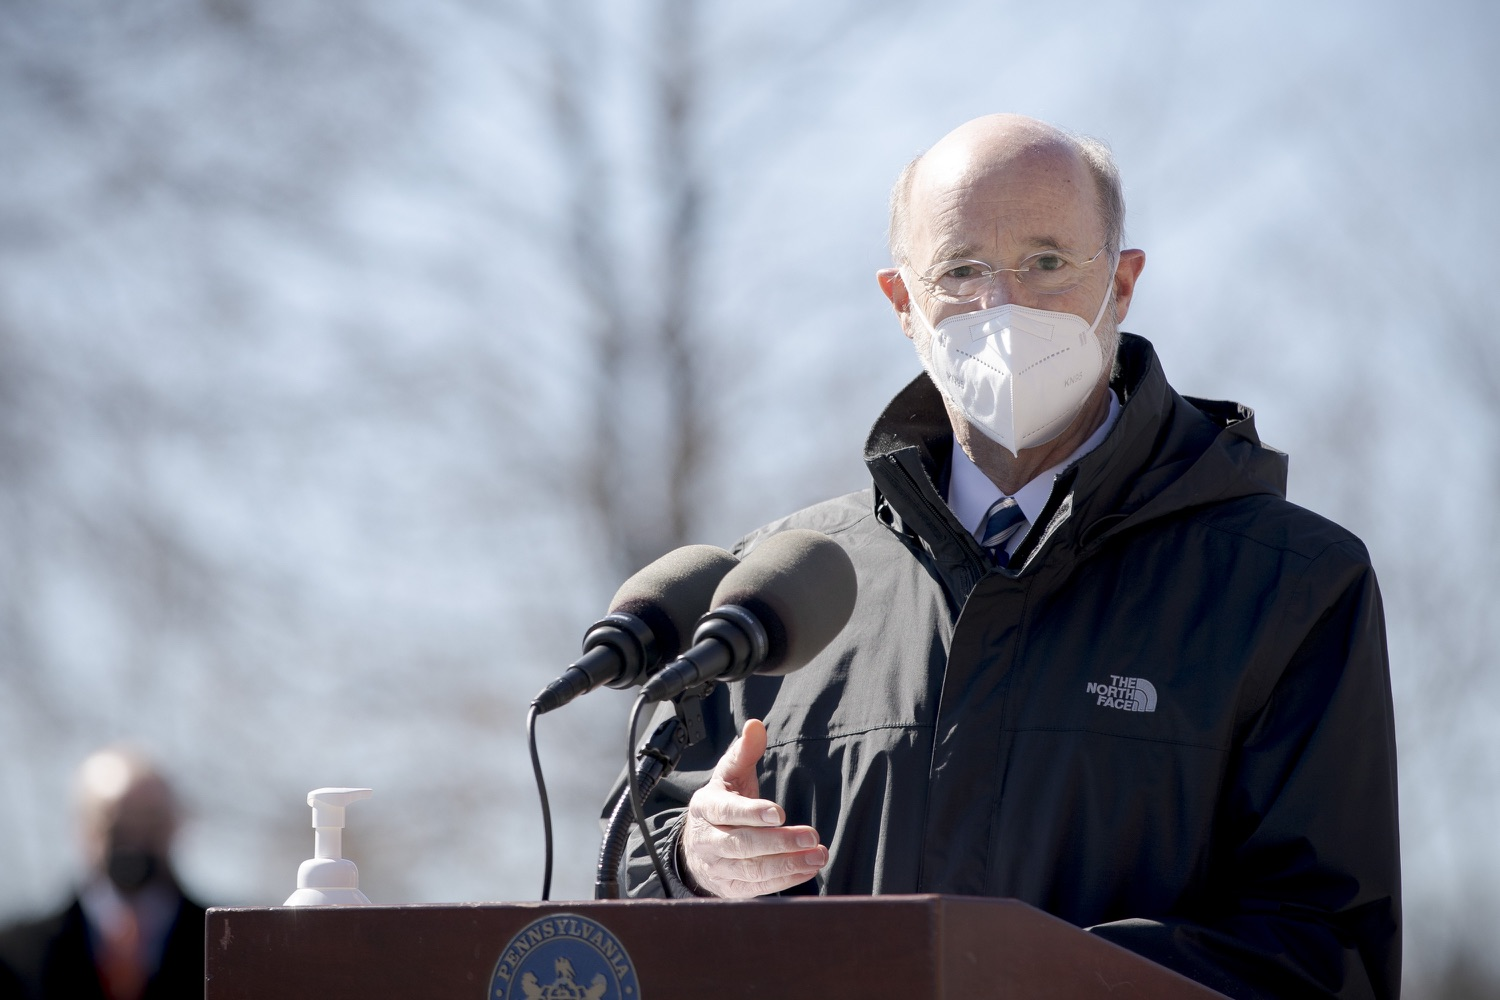 "<a href=""https://filesource.wostreaming.net/commonwealthofpa/photo/18560_gov_chirp_dz_01.jpg"" target=""_blank"">⇣ Download Photo<br></a>Pennsylvania Governor Tom Wolf answers questions from the press.  Governor Tom Wolf announced today that the hospitality industry will soon be able to apply for immediate relief through the COVID-19 Hospitality Industry Recovery Program (CHIRP), a new grant program established by the Wolf Administration to support local businesses in the hospitality industry that were affected by the COVID-19 pandemic. Harrisburg, PA  March 2, 2021. .."